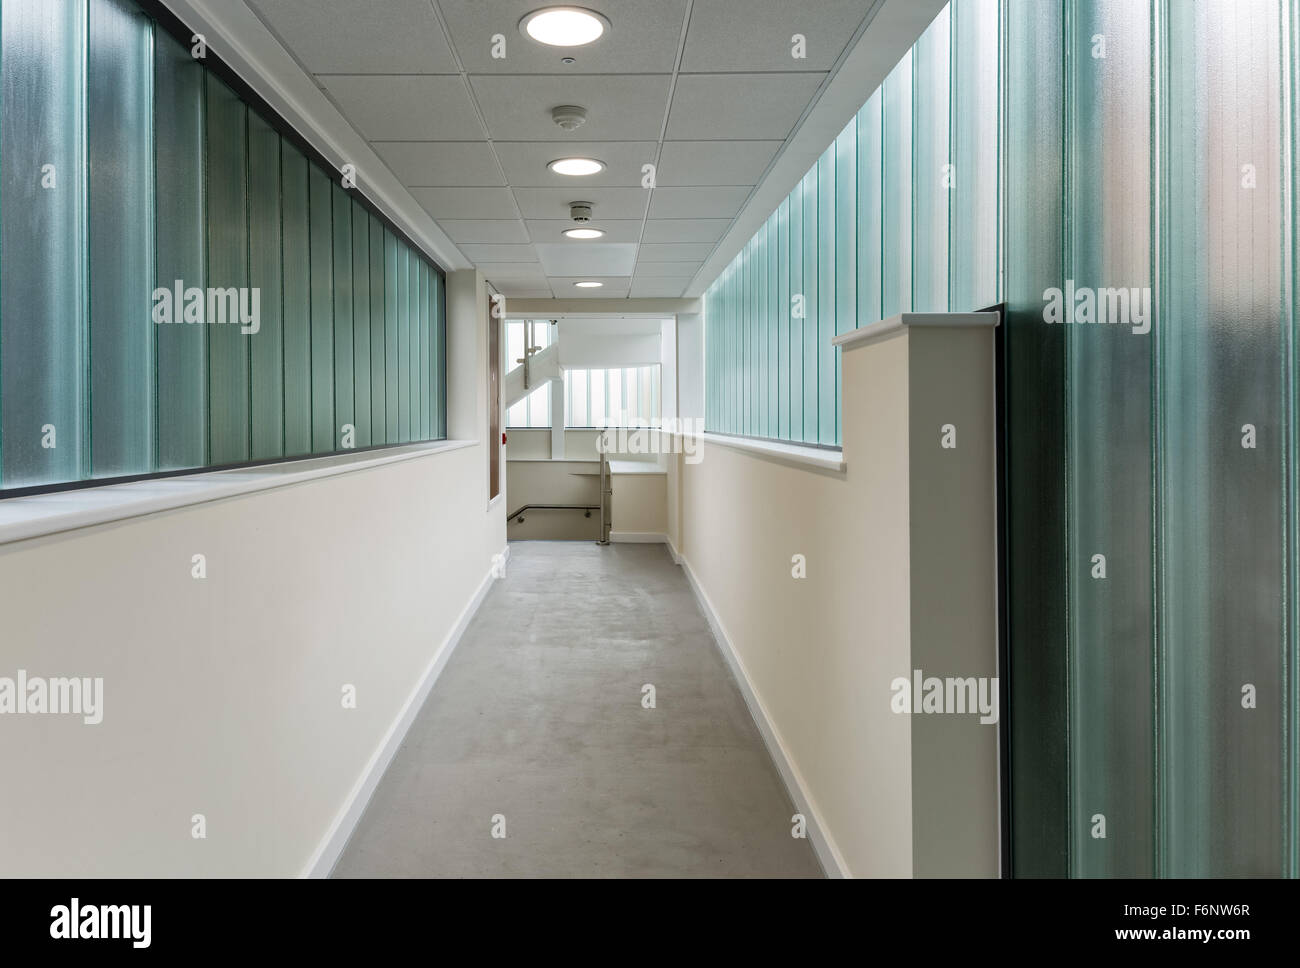 Modern corridor with glass walls - Stock Image